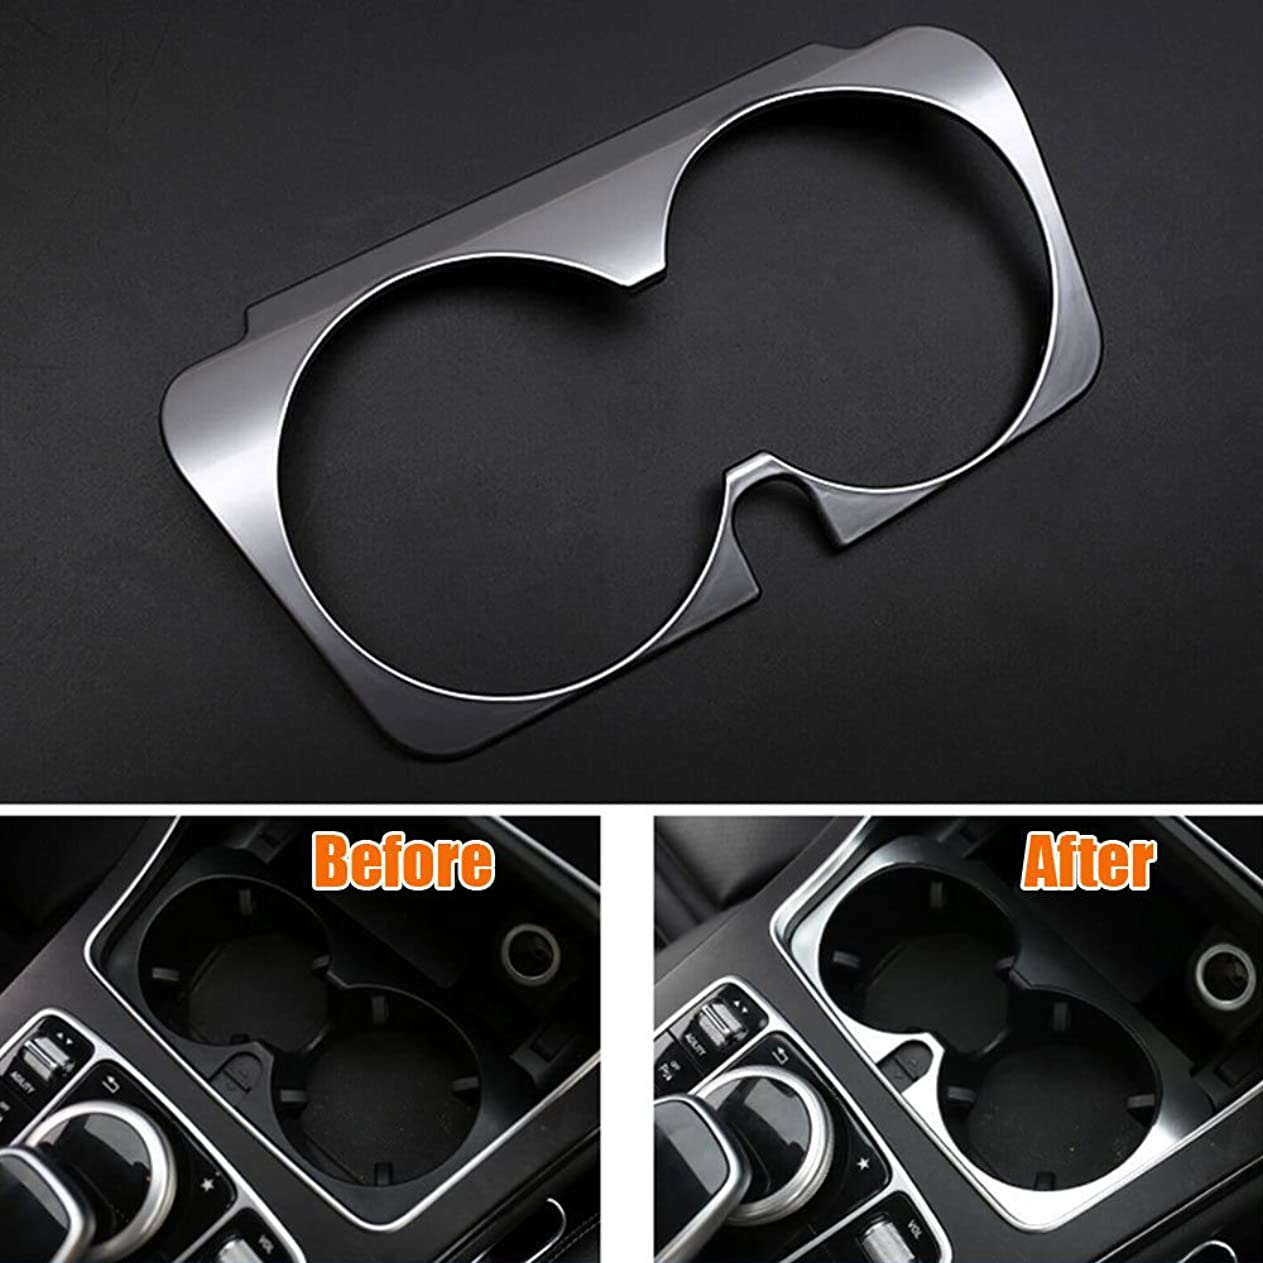 オアシスバーストの量Jicorzo - Console Water Cup Holder Cover Trim Frame Interior Chrome ABS Car-styling Sticker For Mercedes Benz GLC 2016 Car Accessories